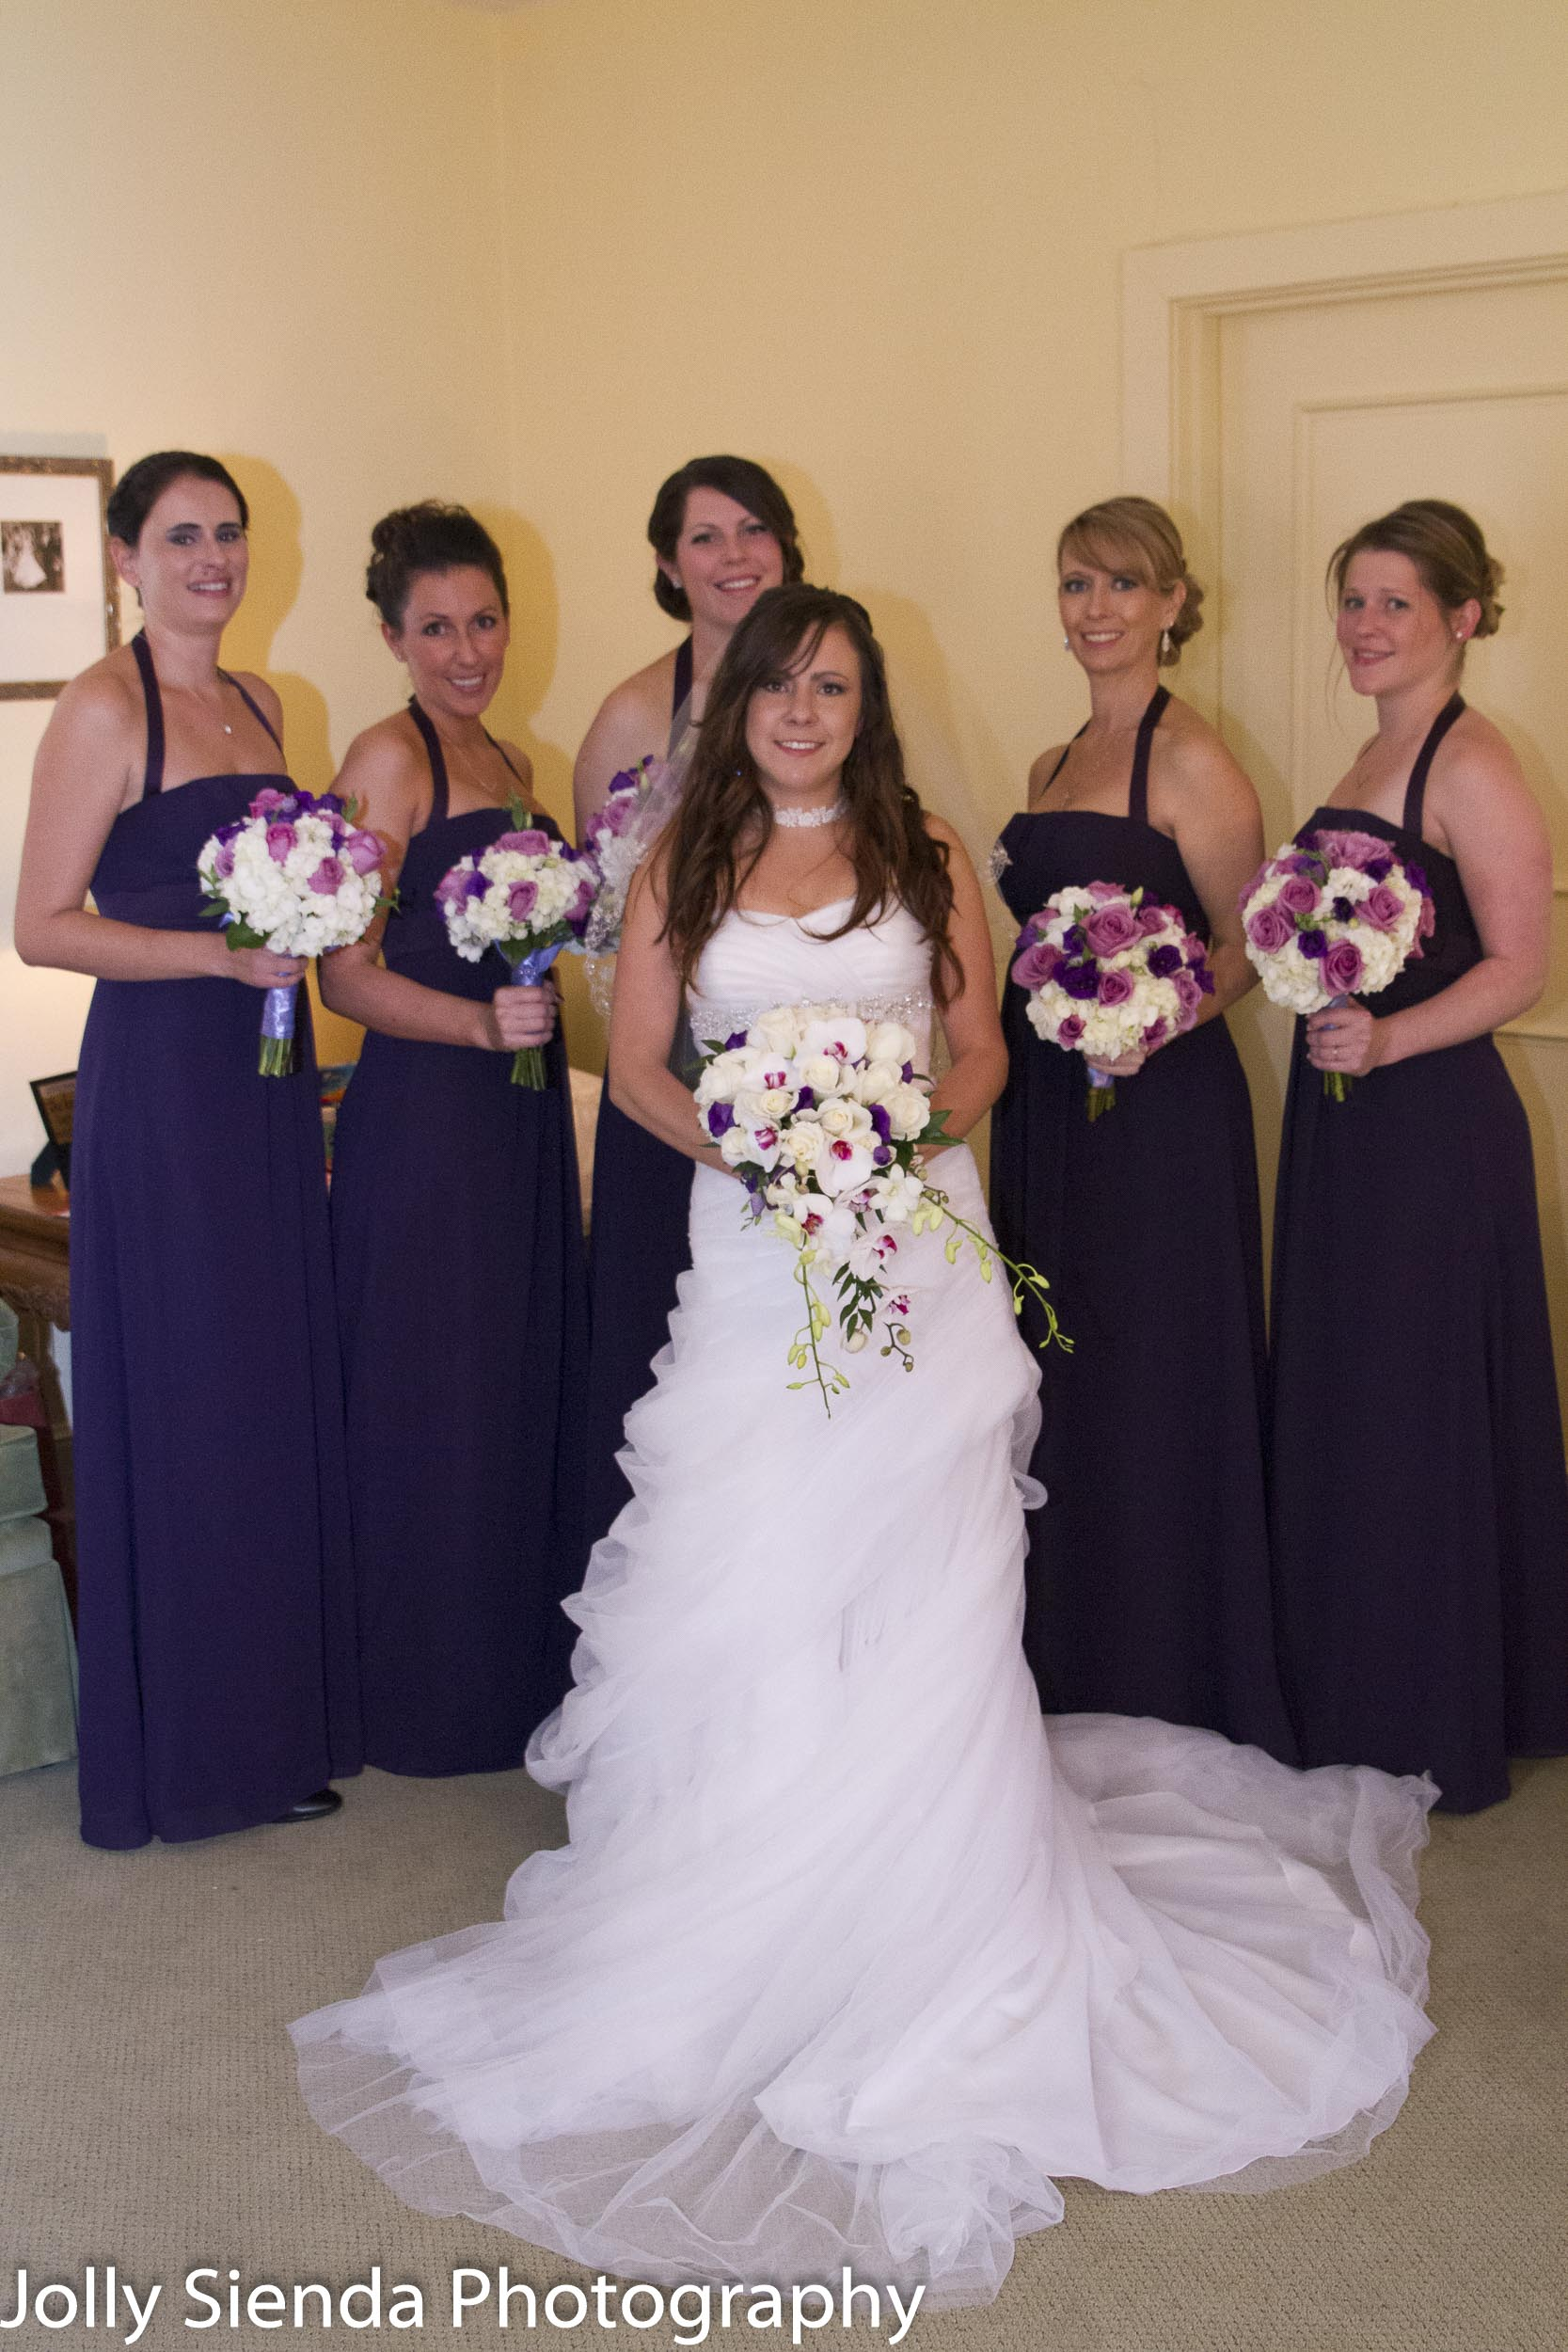 Portrait of a bride with her bridesmaids